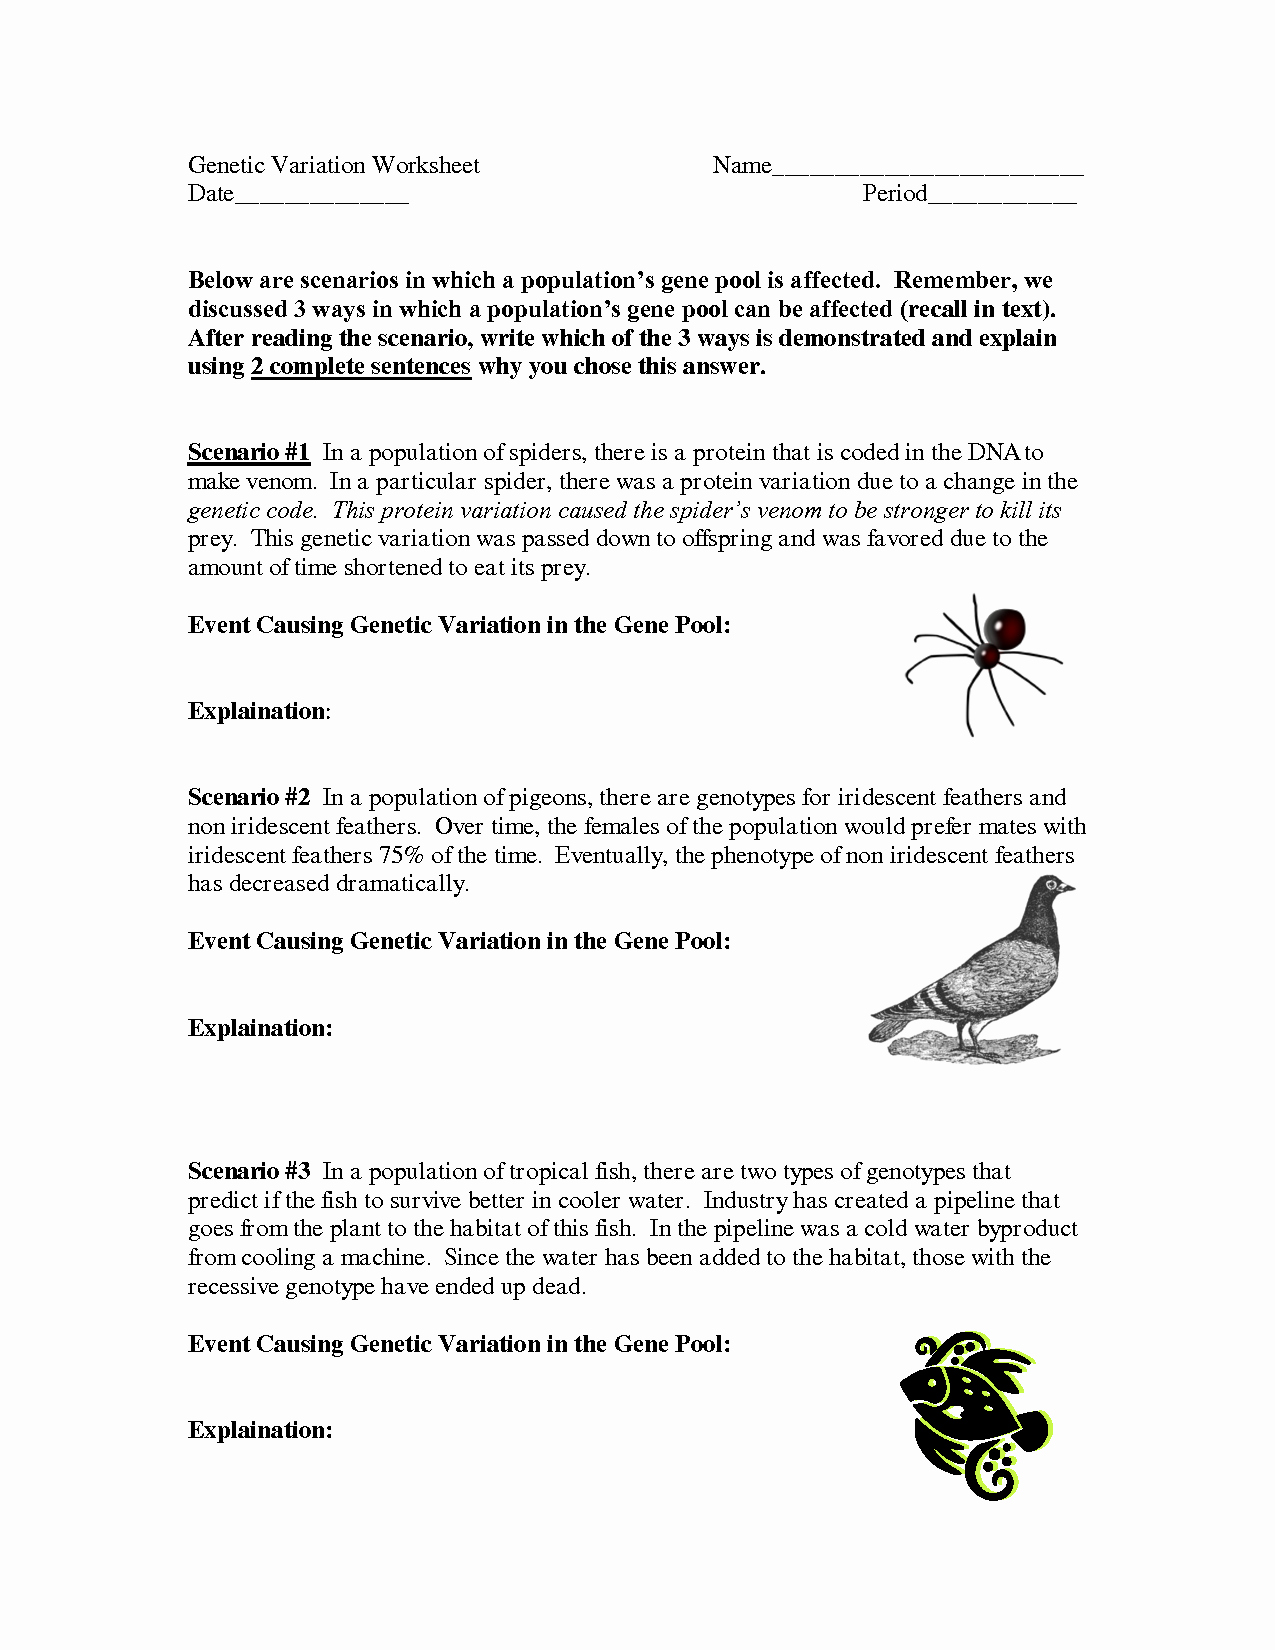 50 Genetic Mutations Worksheet Answer Key